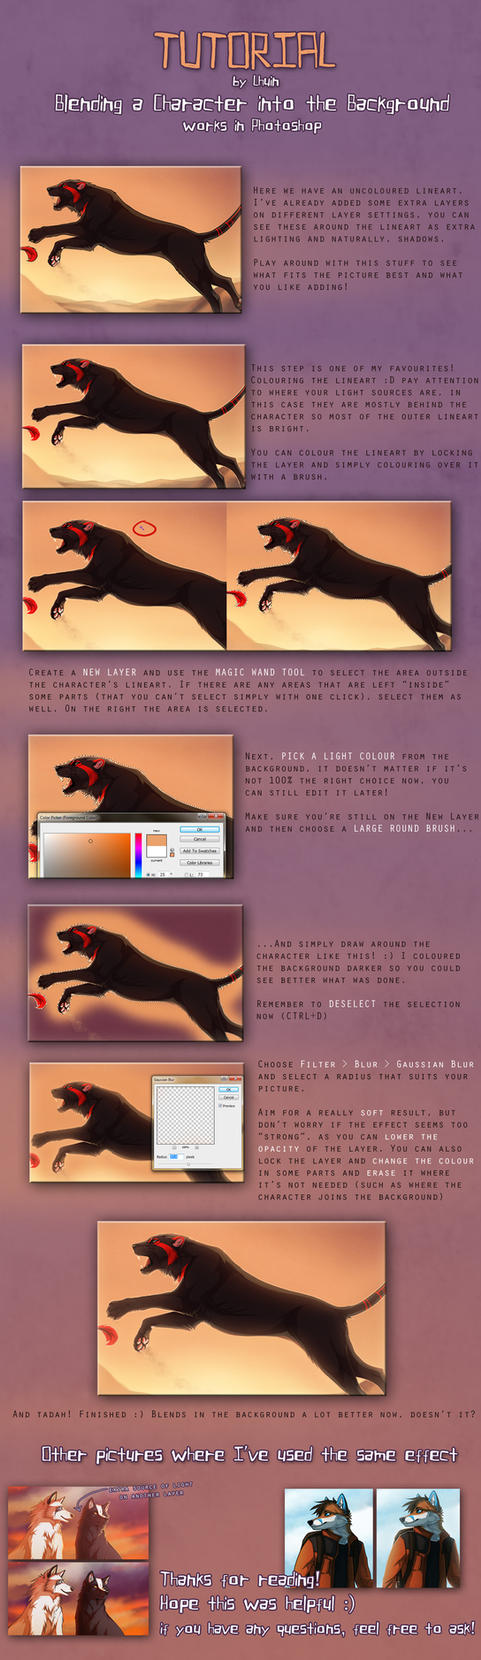 Tutorial - Blending a Character into the BG by Lhuin